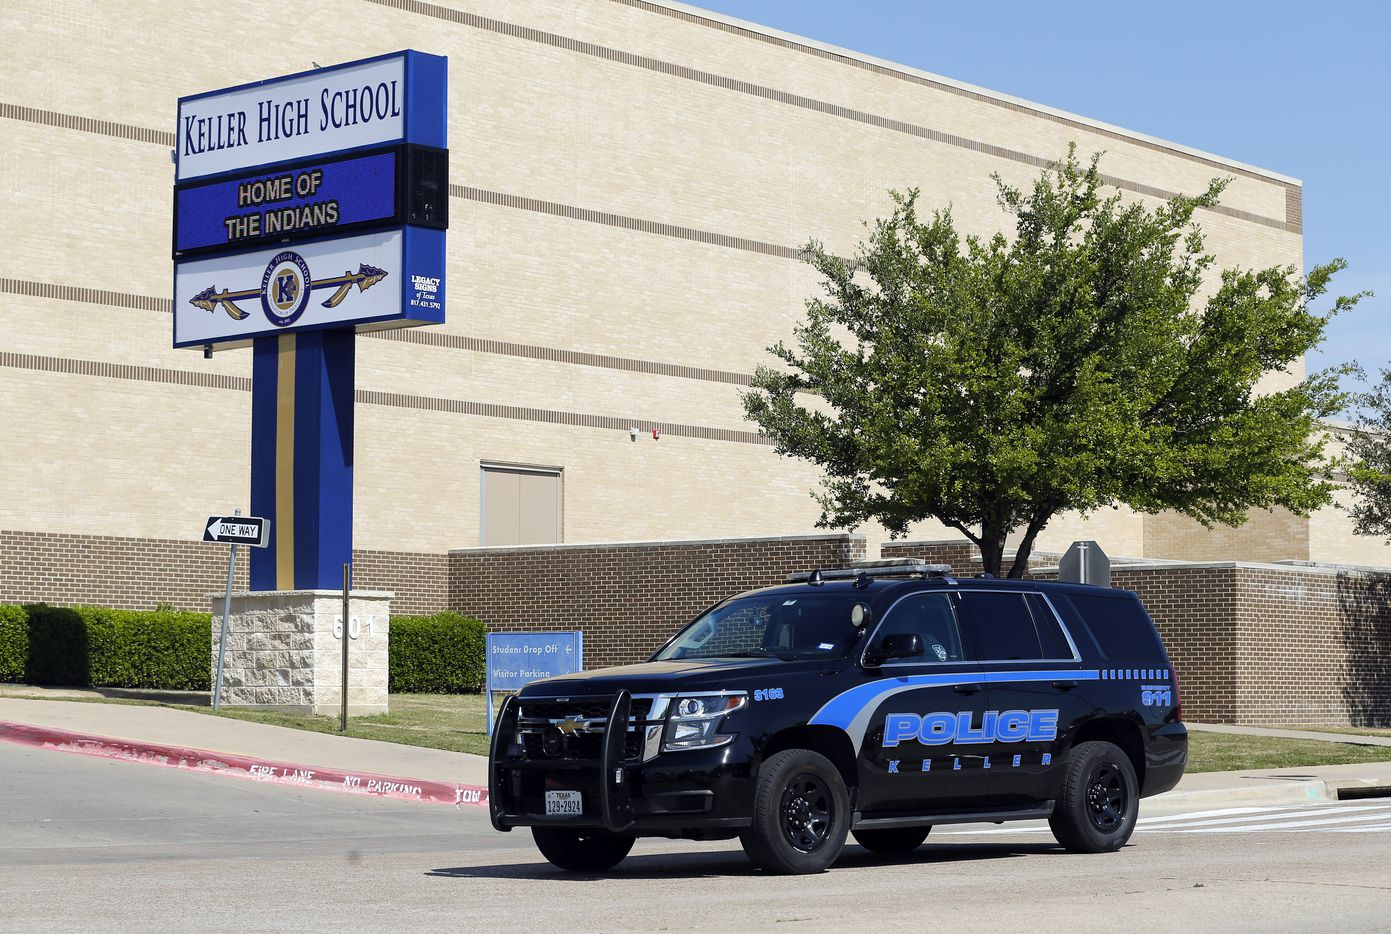 A Keller police officer patrols outside Keller High School after Keller ISD officials received information indicating an act of violence would take place at either the pep rally or student-organized walkout.